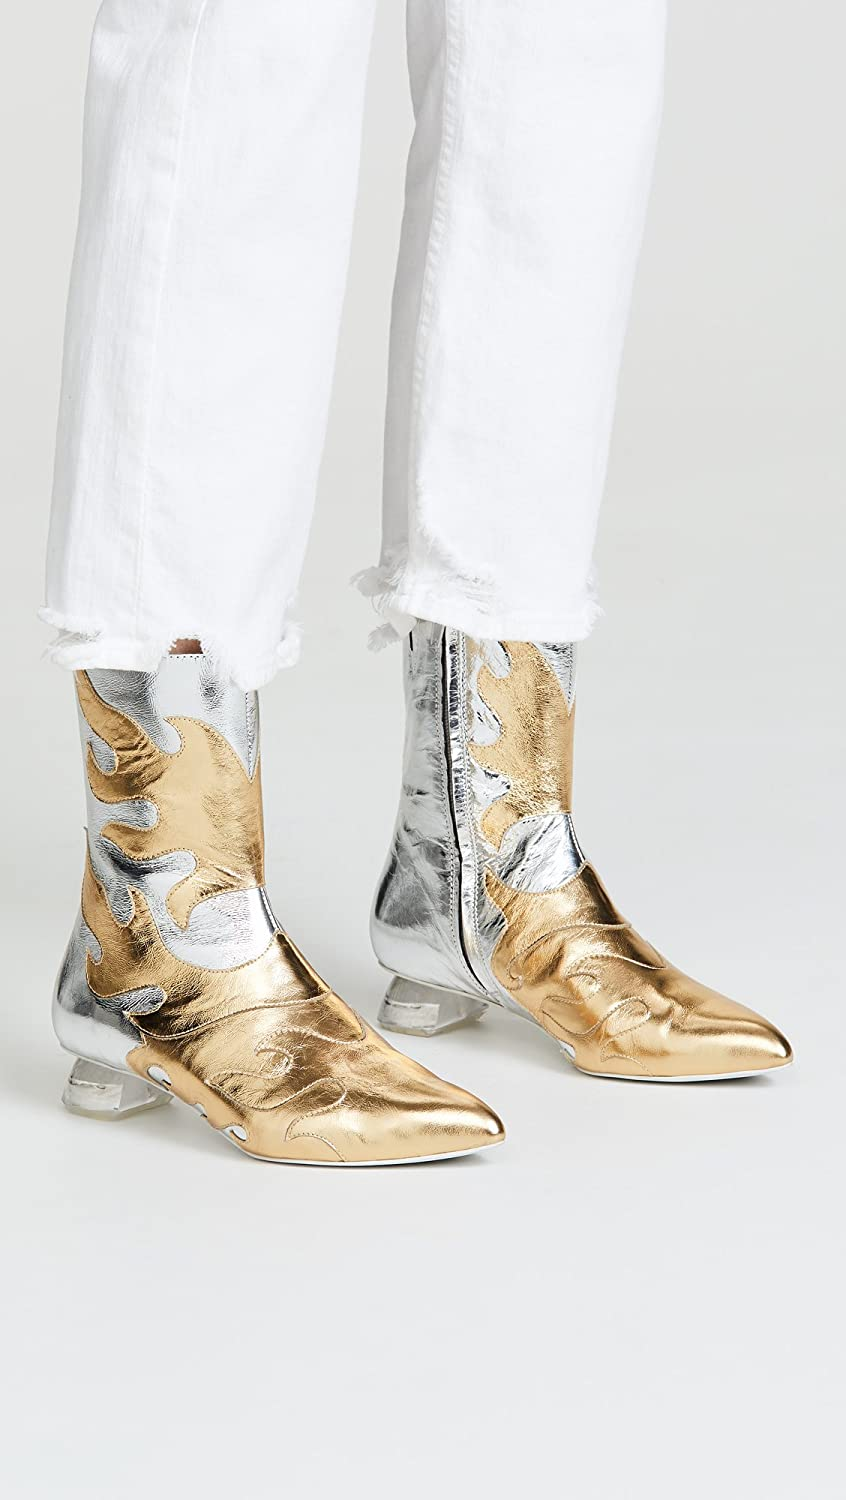 Jeffrey Campbell Women's Skyrocket Flame Ankle Boots B07DL7LZVB 7.5 B(M) US|Silver/Gold